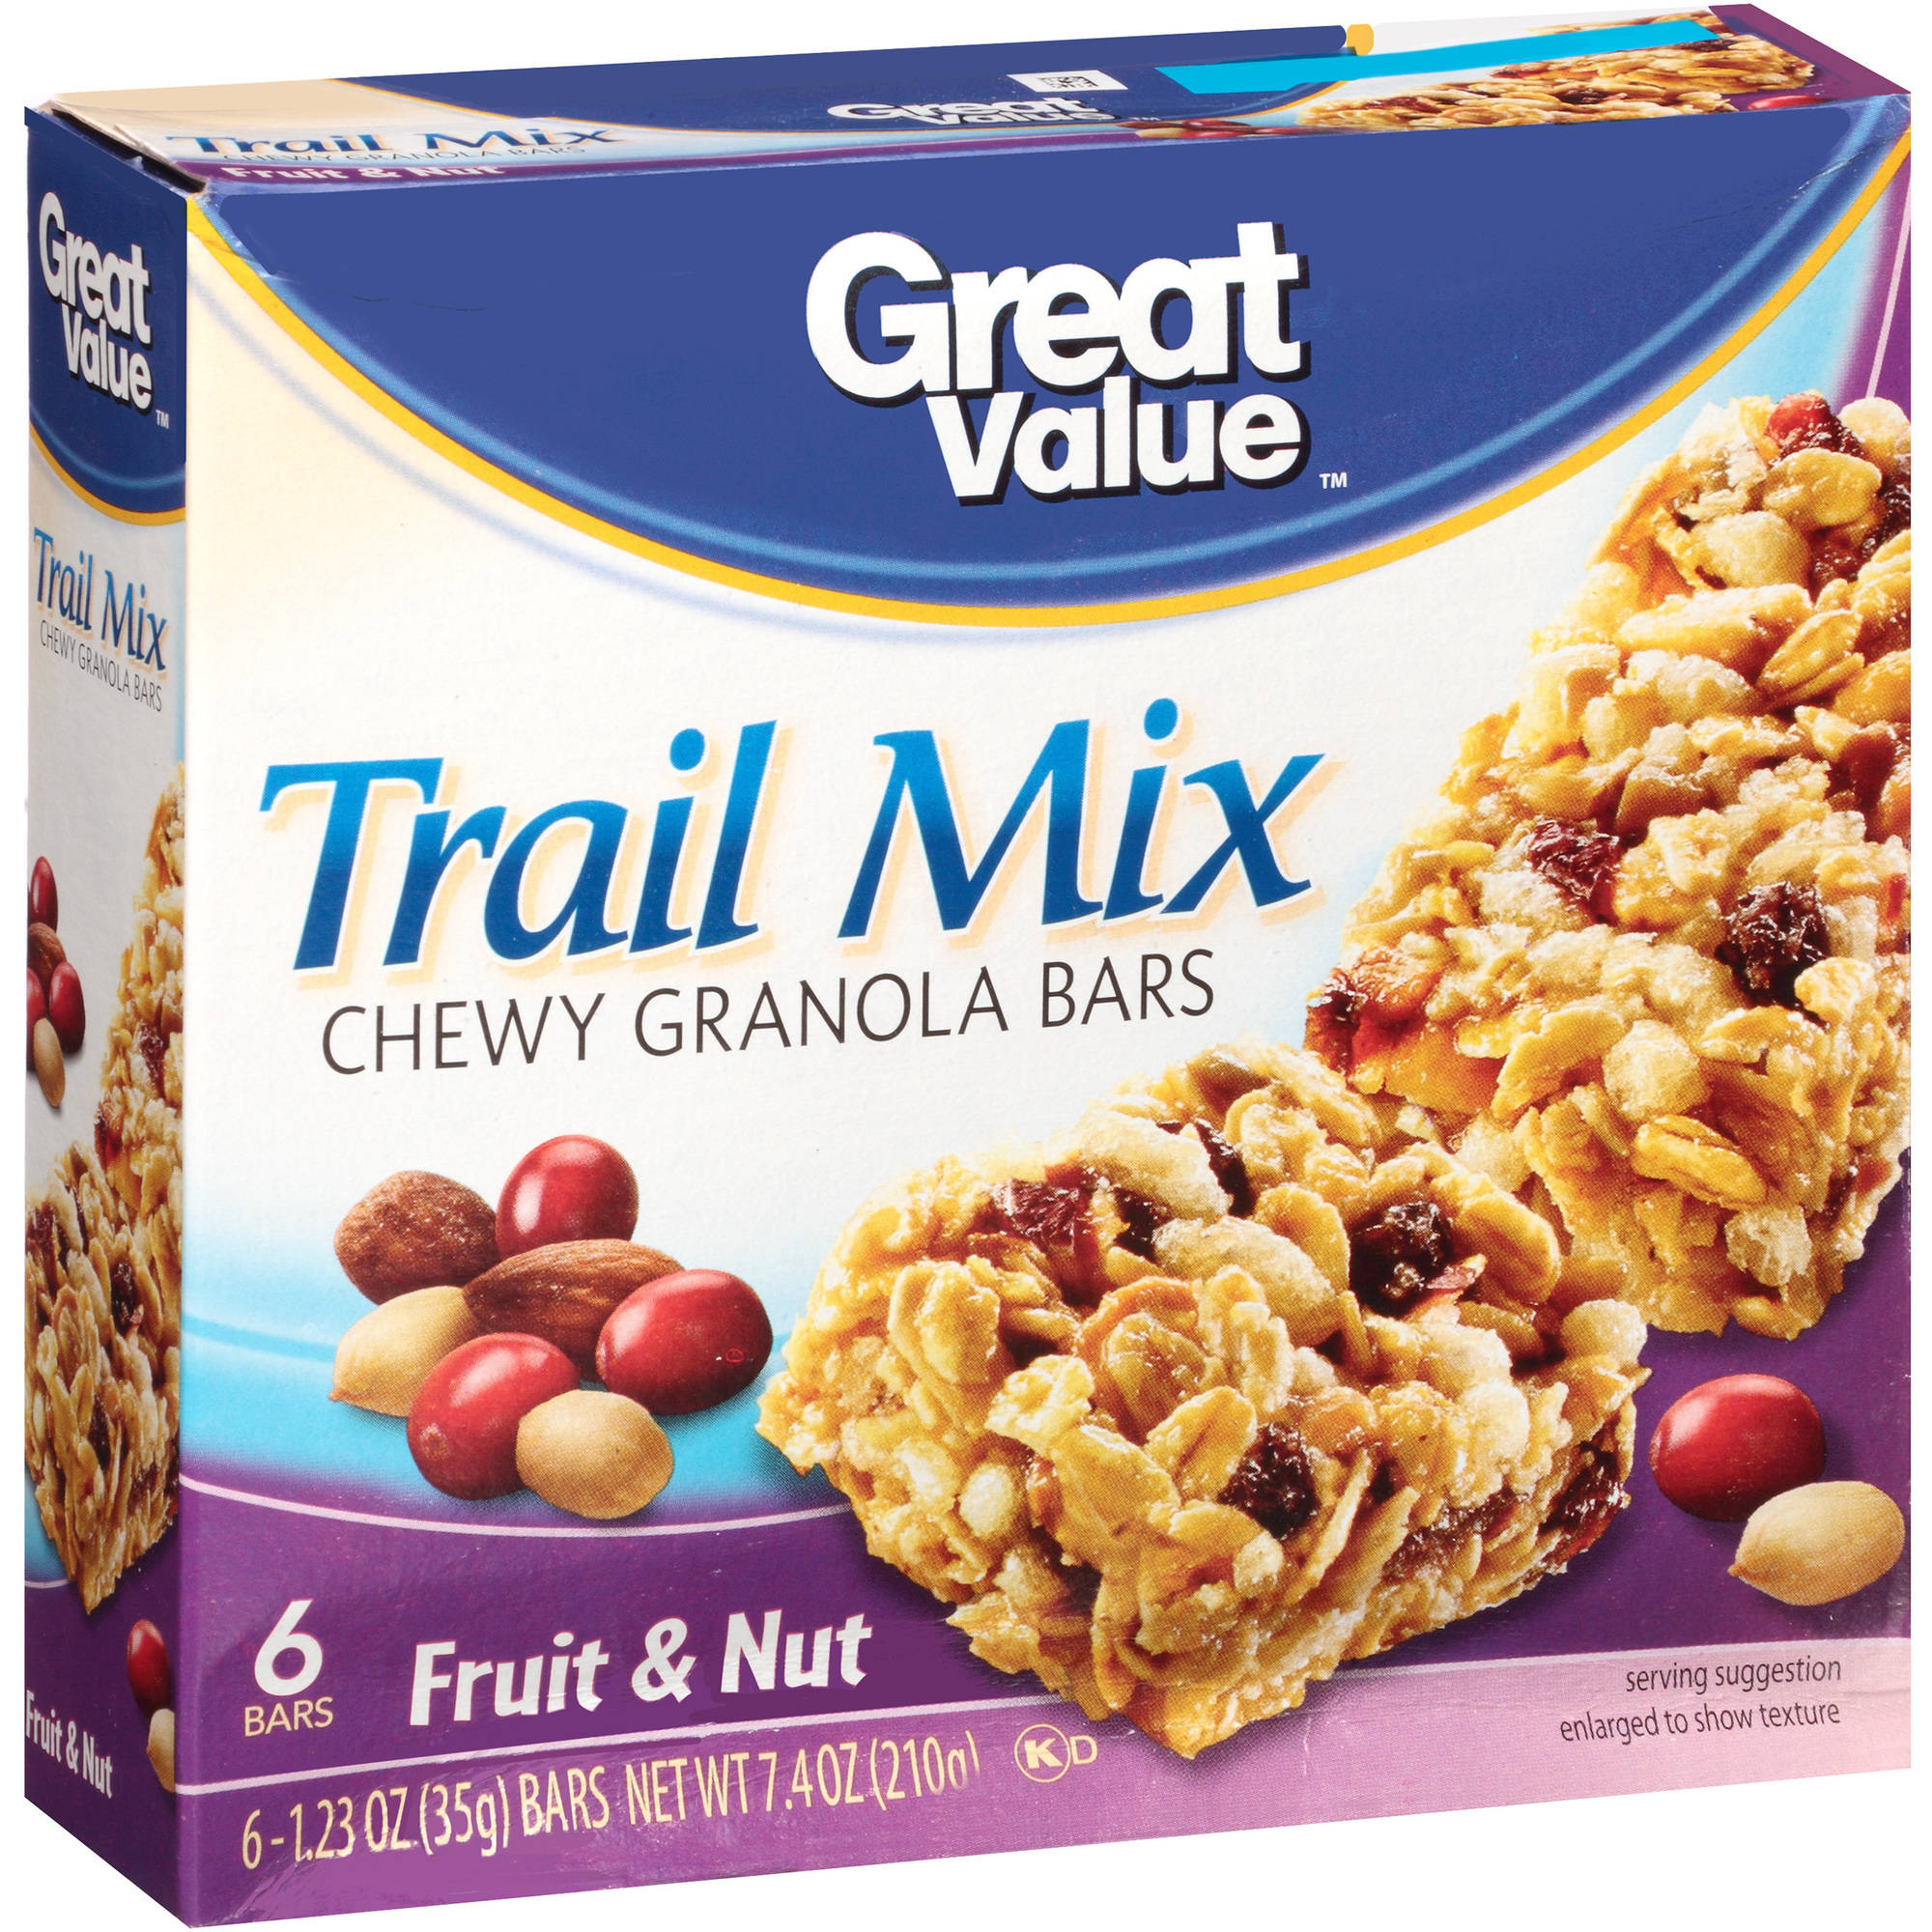 Great Value Fruit & Nut Trail Mix Granola Bar, 6 pk